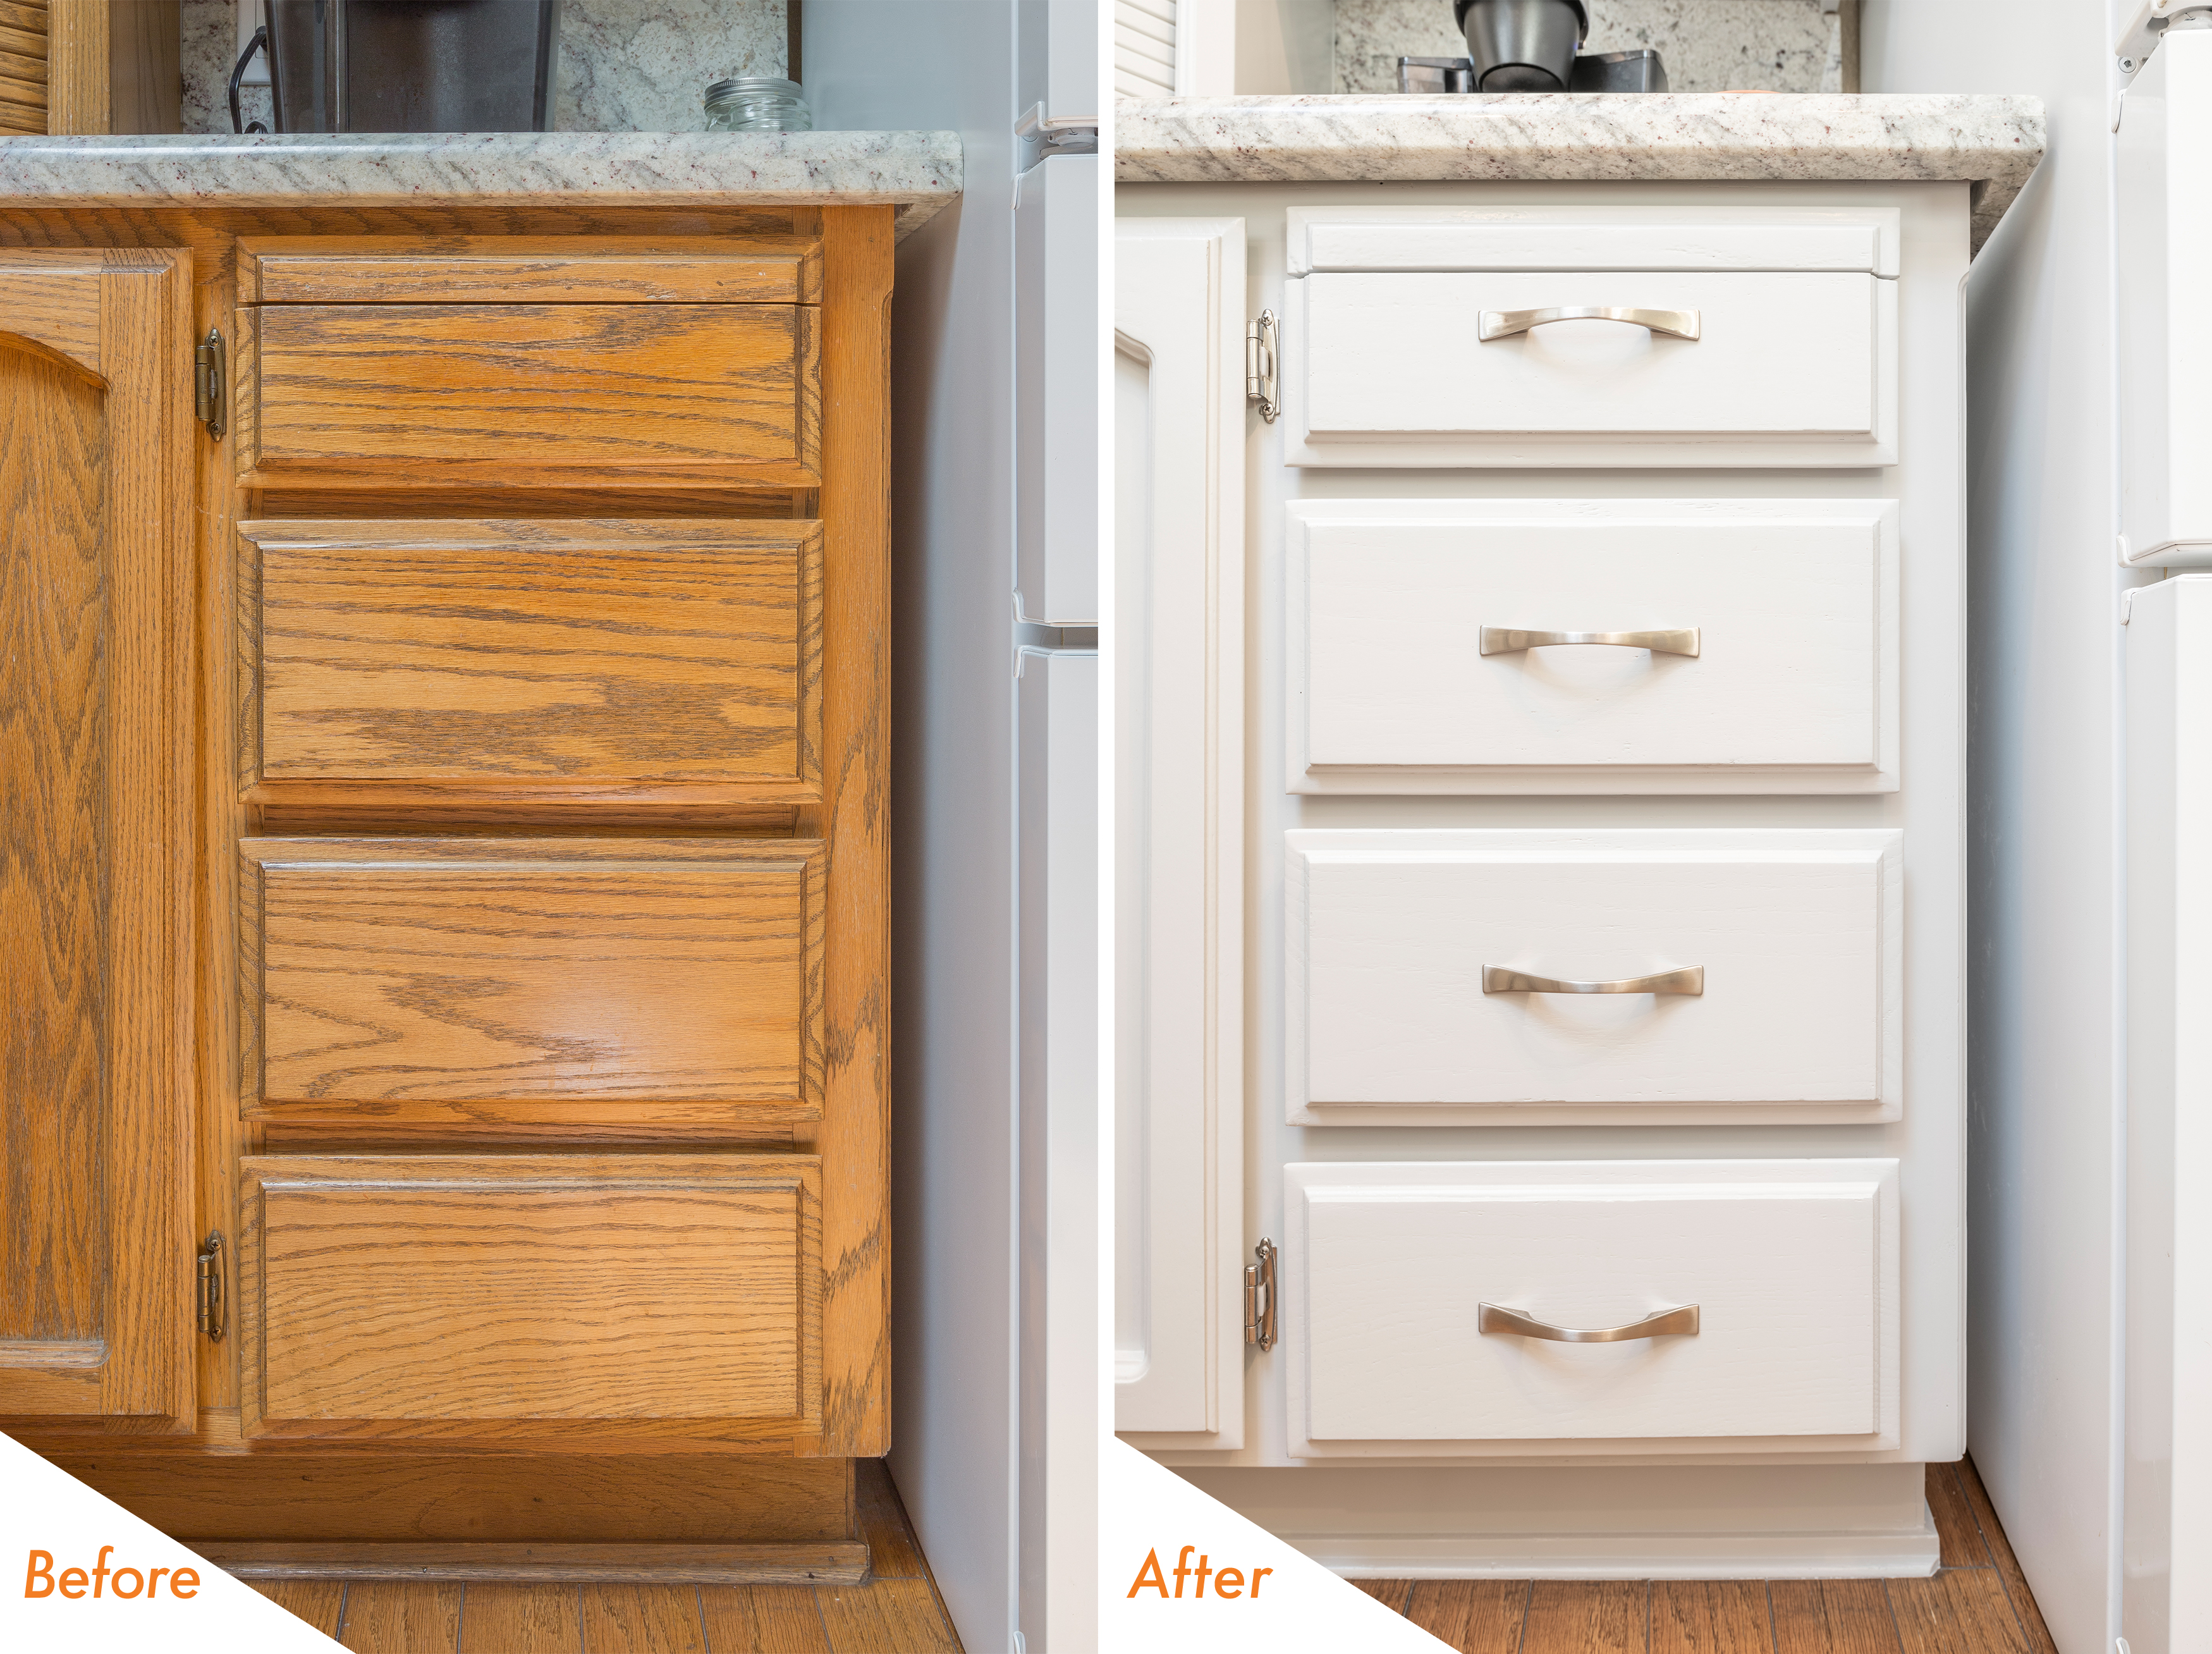 Before & After Kitchen Refinish